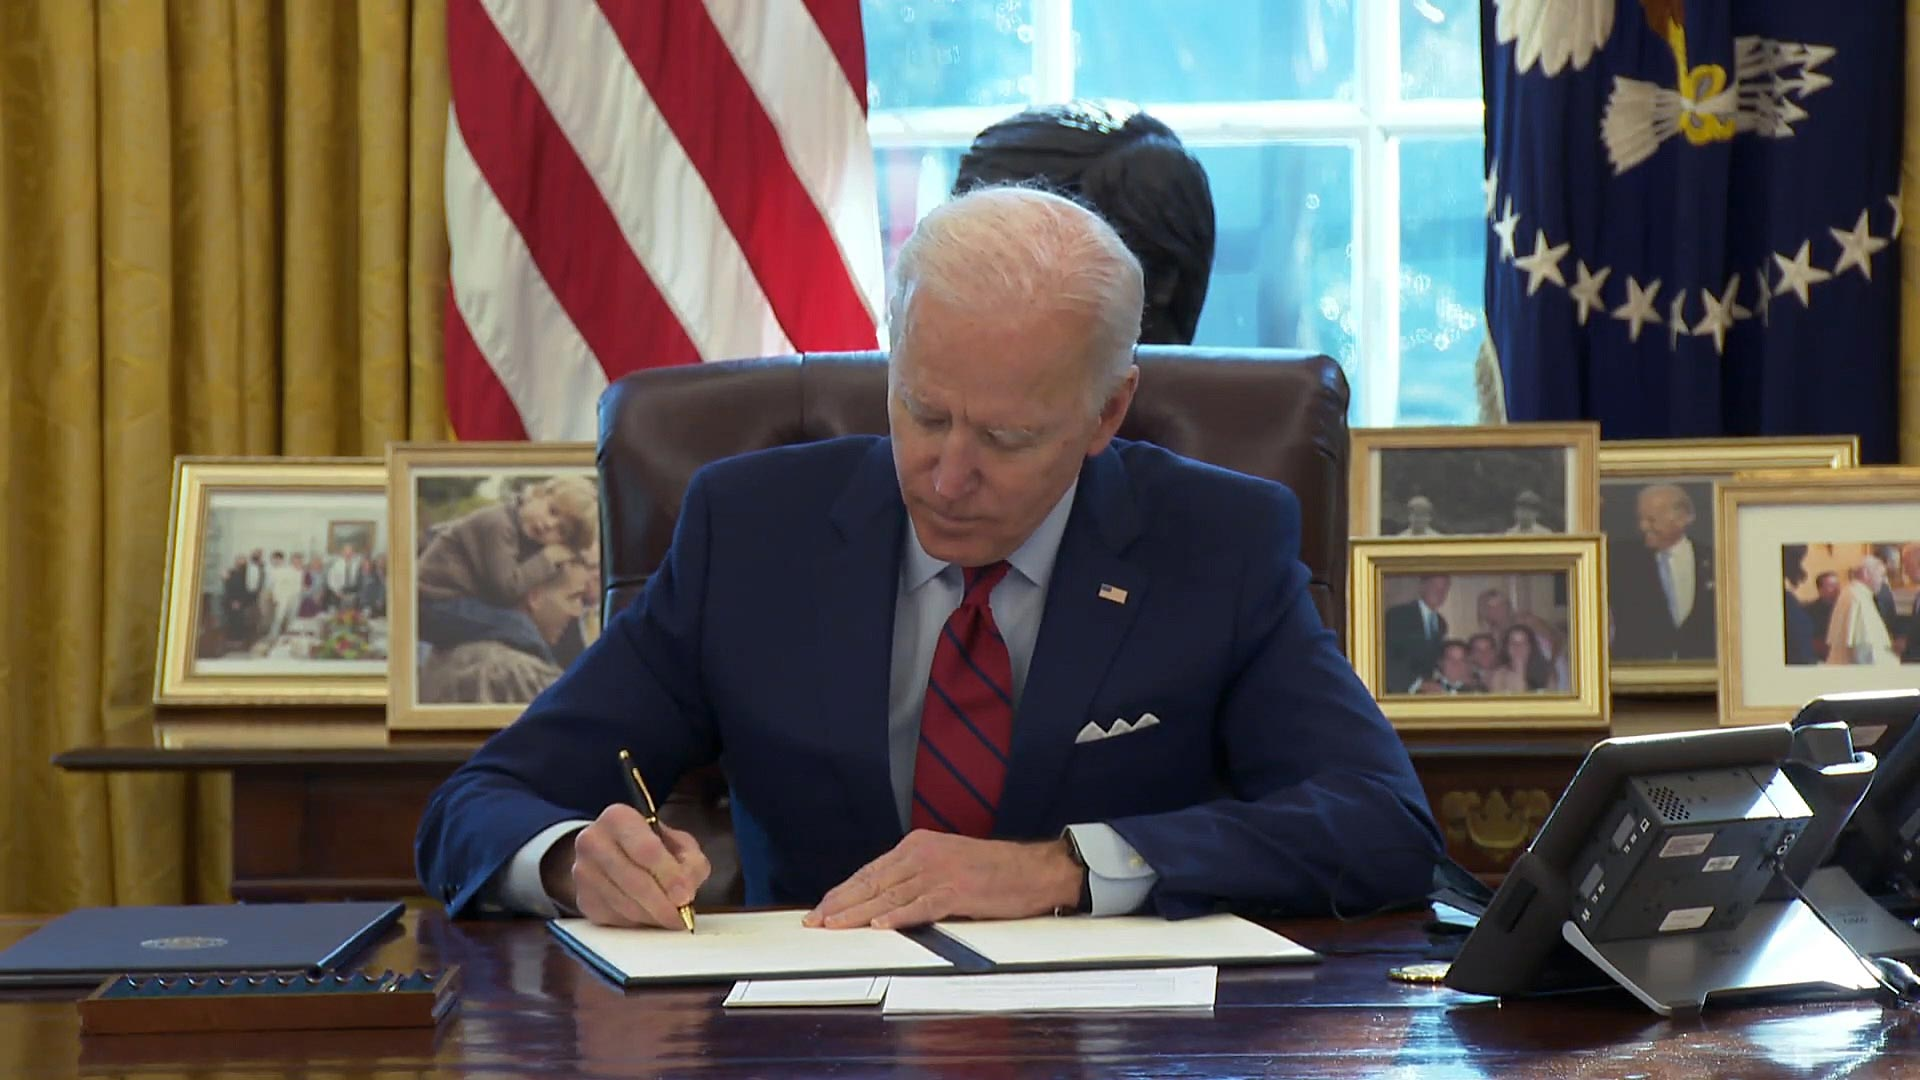 President Joe Biden signs executive orders at his desk in the Oval Office on Jan. 28, 2021.